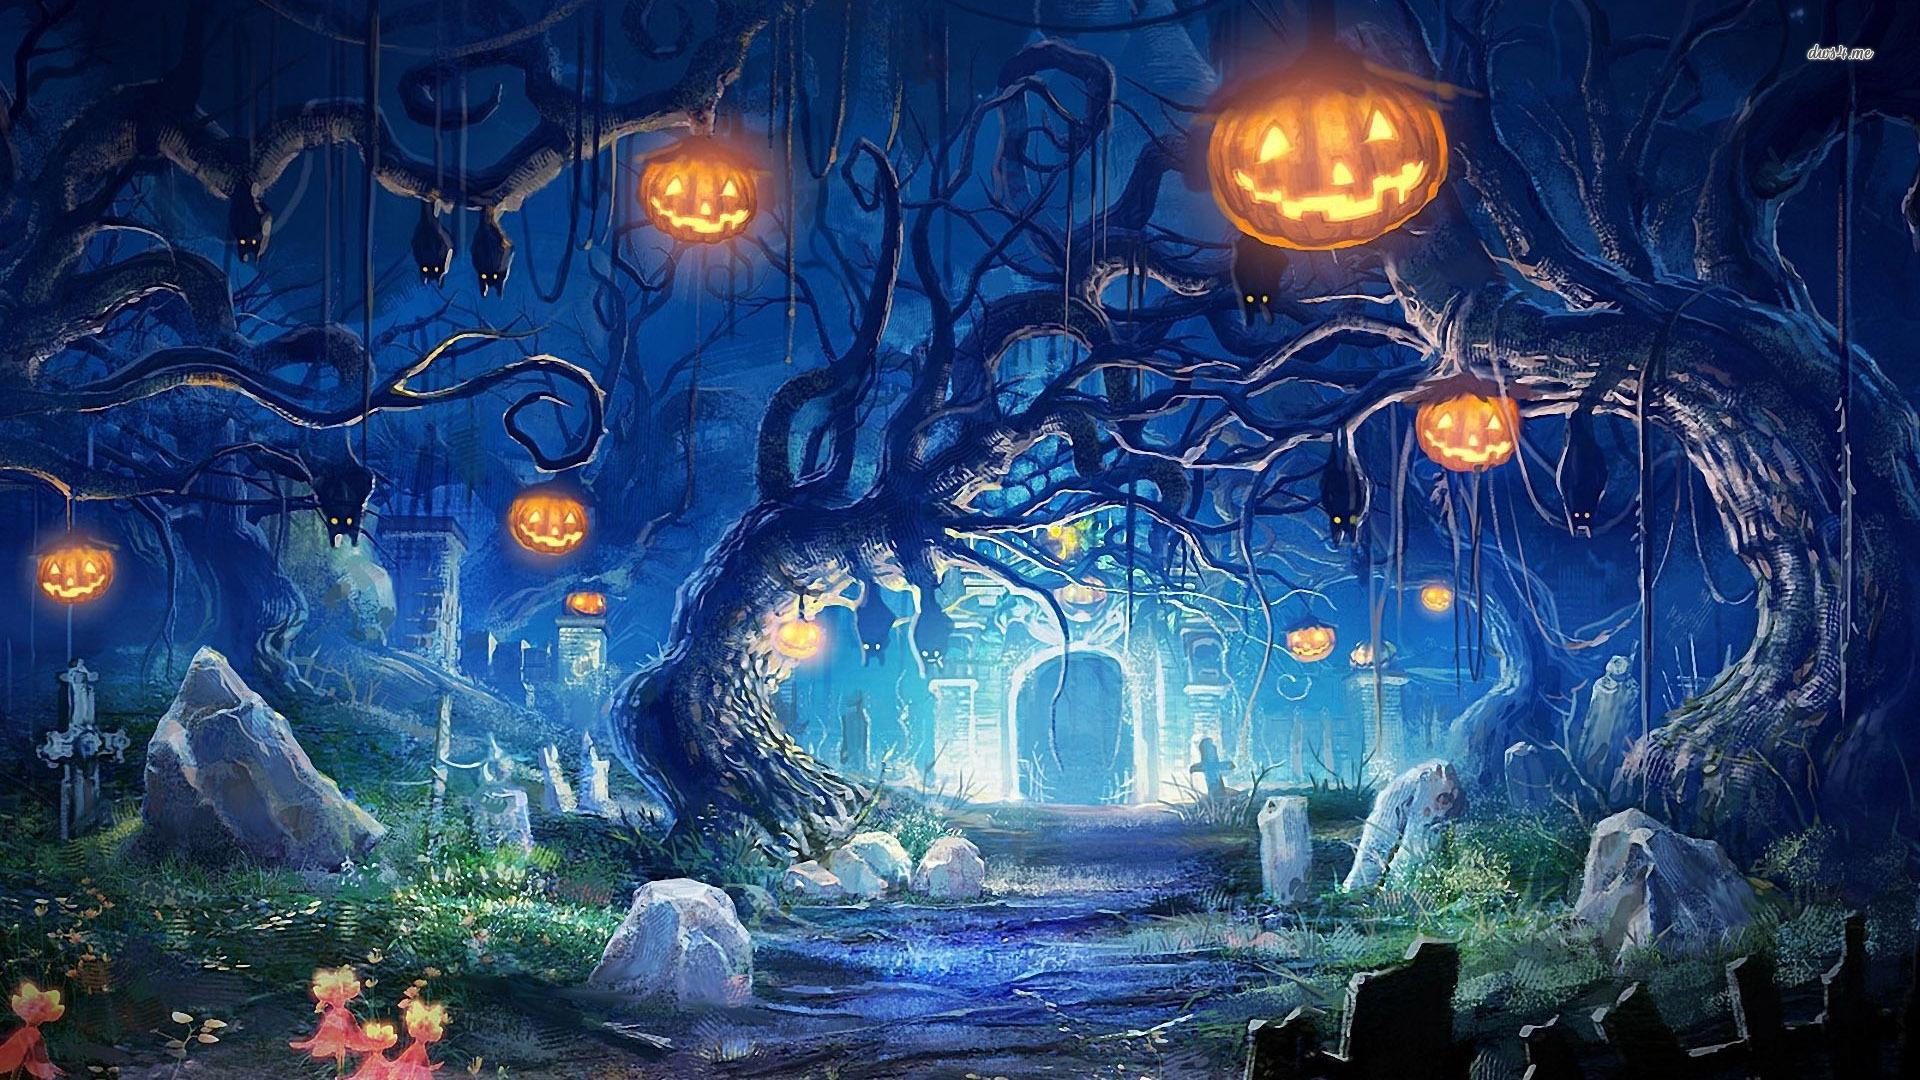 Halloween night in the cemetery wallpaper   Holiday wallpapers 1920x1080